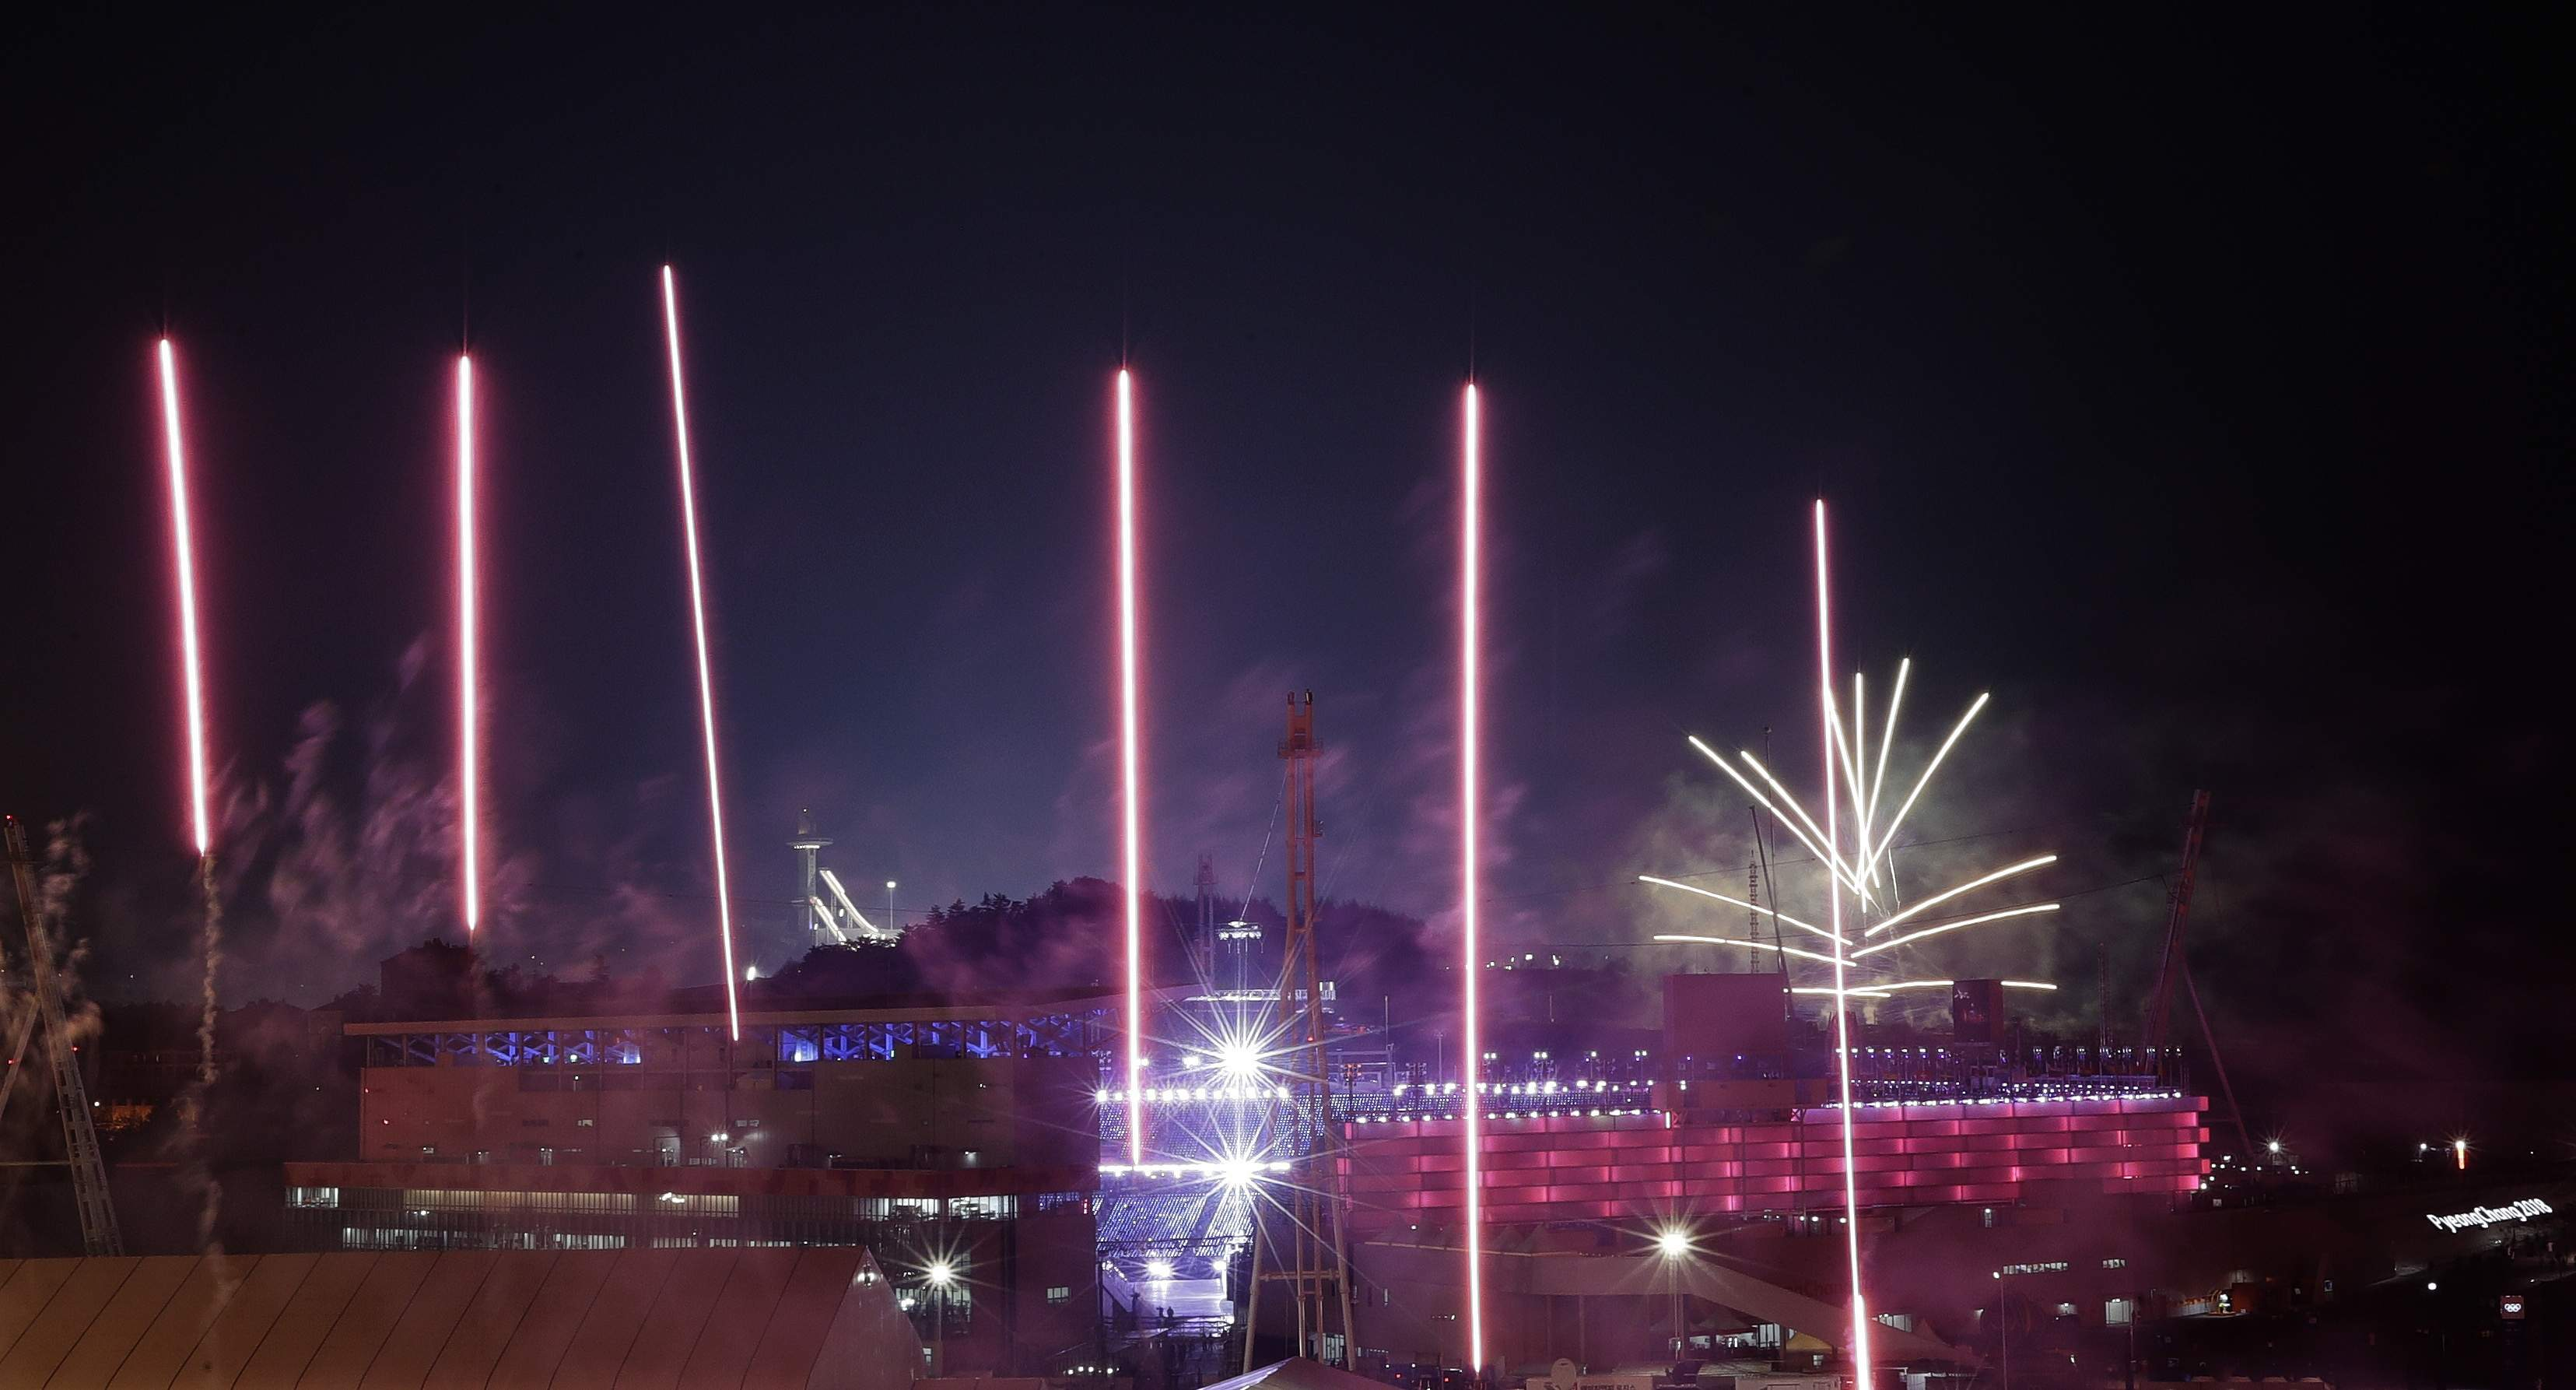 Fireworks explode around the Olympic Stadium to mark the start of the opening ceremony at the 2018 Winter Olympics in Pyeongchang, South Korea, Friday, Feb. 9, 2018. (AP Photo/Kirsty Wigglesworth)